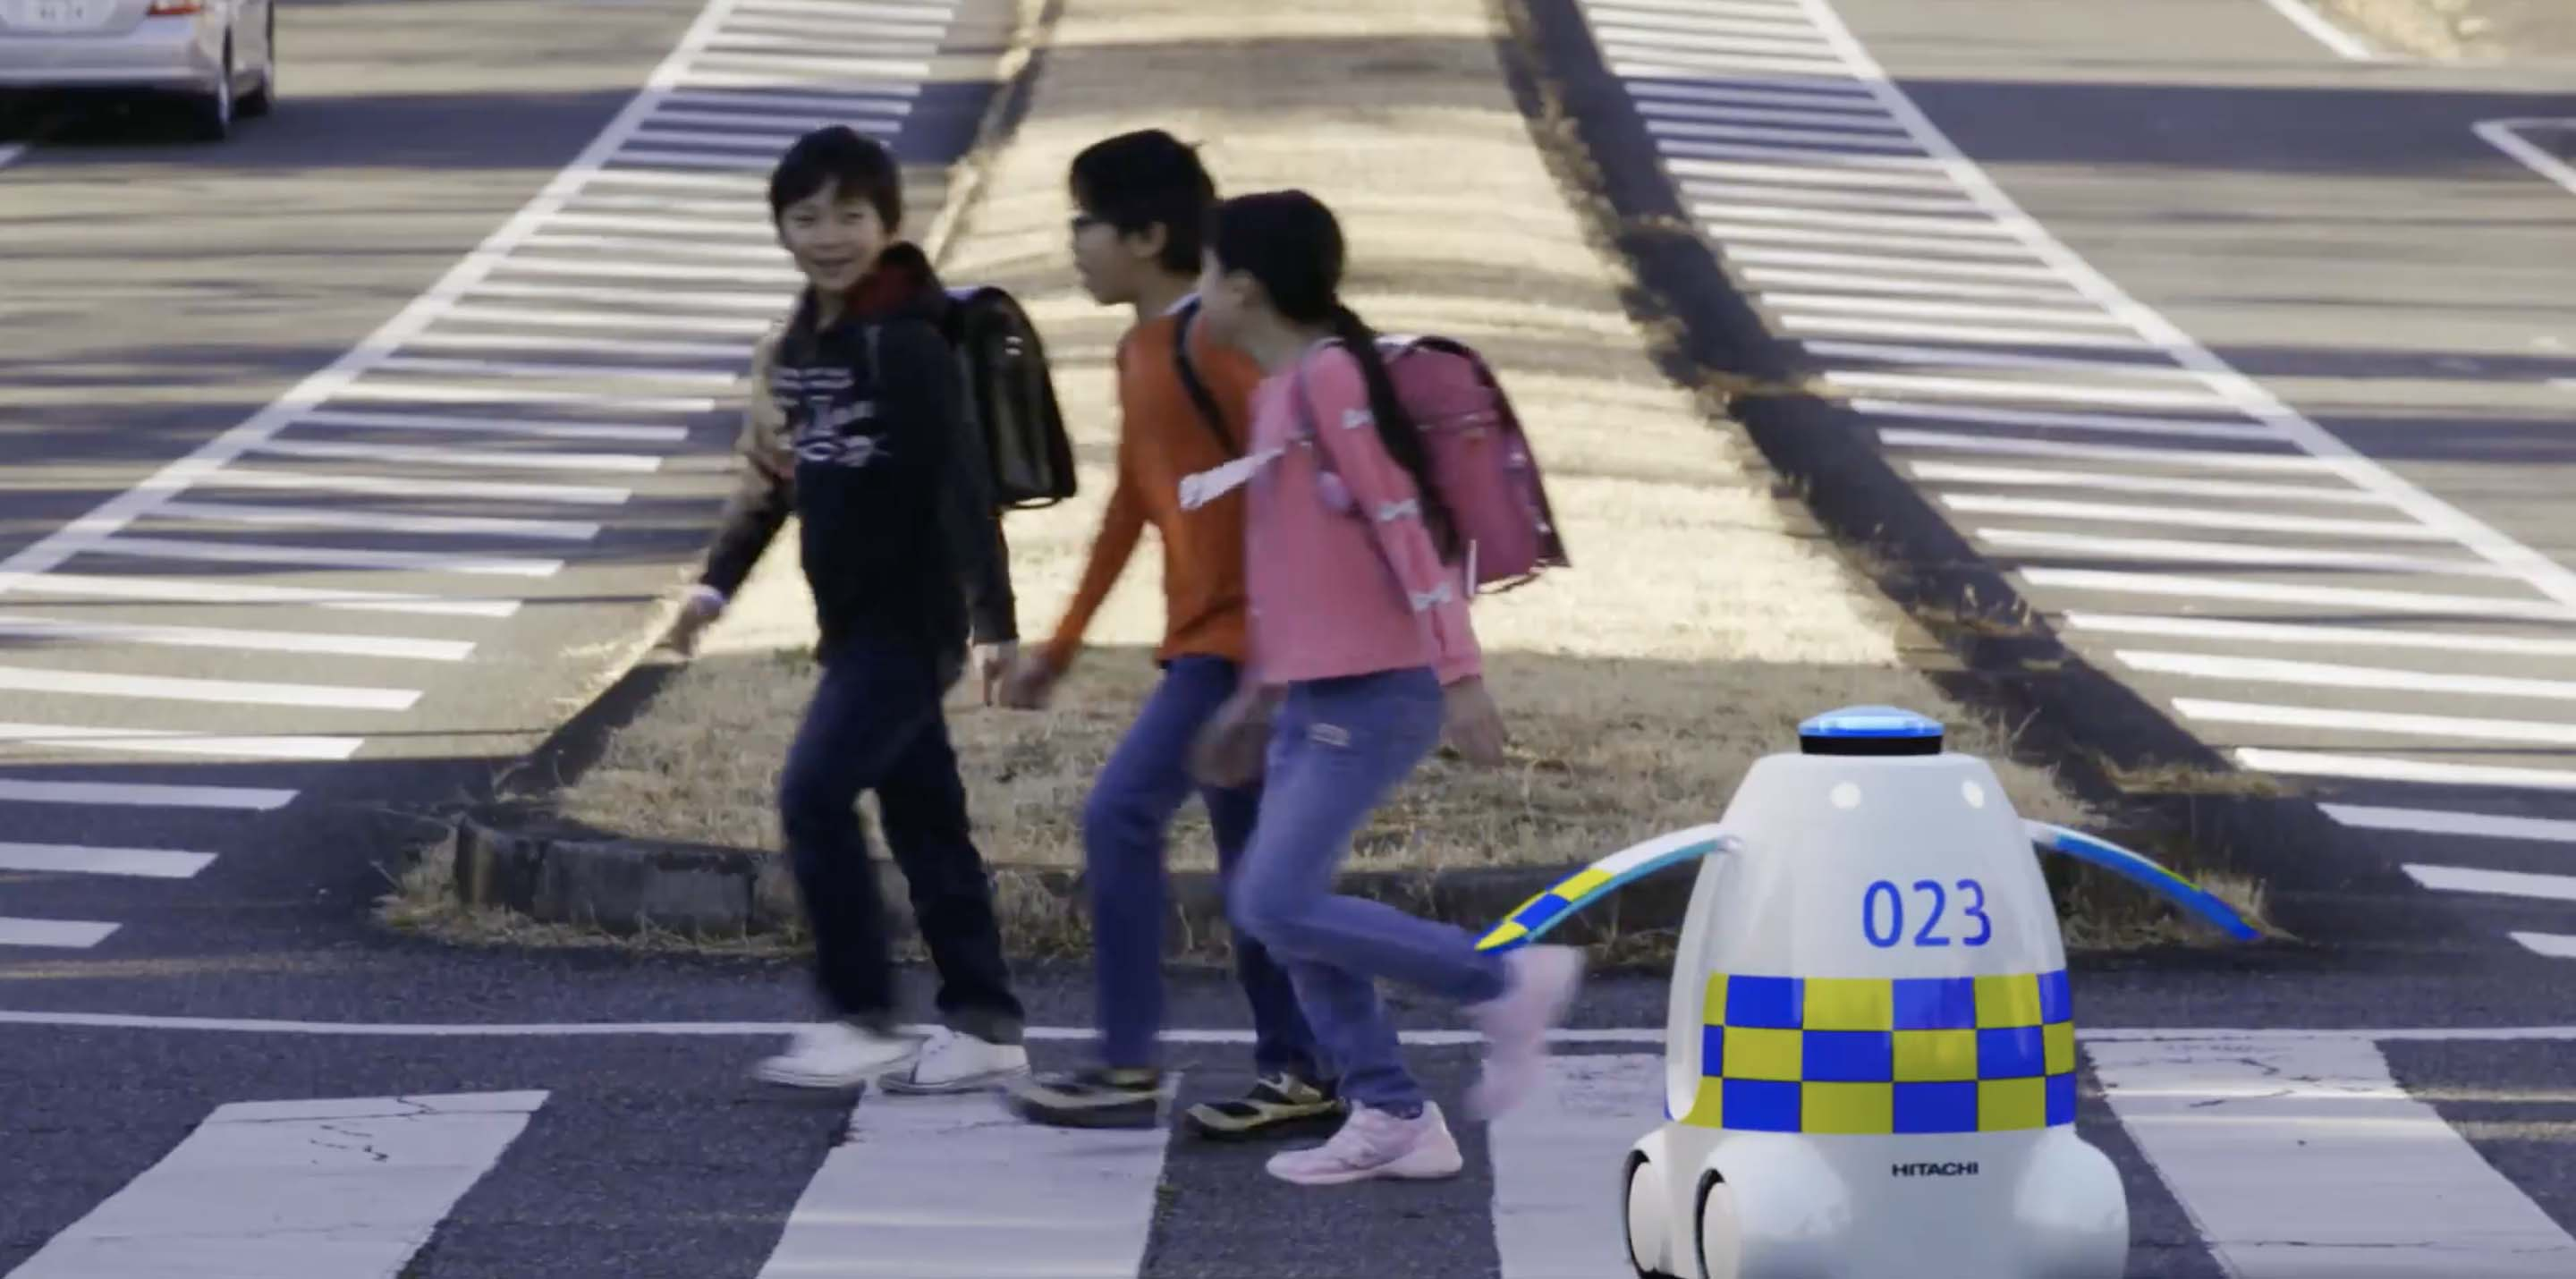 With an interest in social impact and public safety, Hitachi is exploring the benefits of having robots act as urban ushers. (Image: Hitachi)